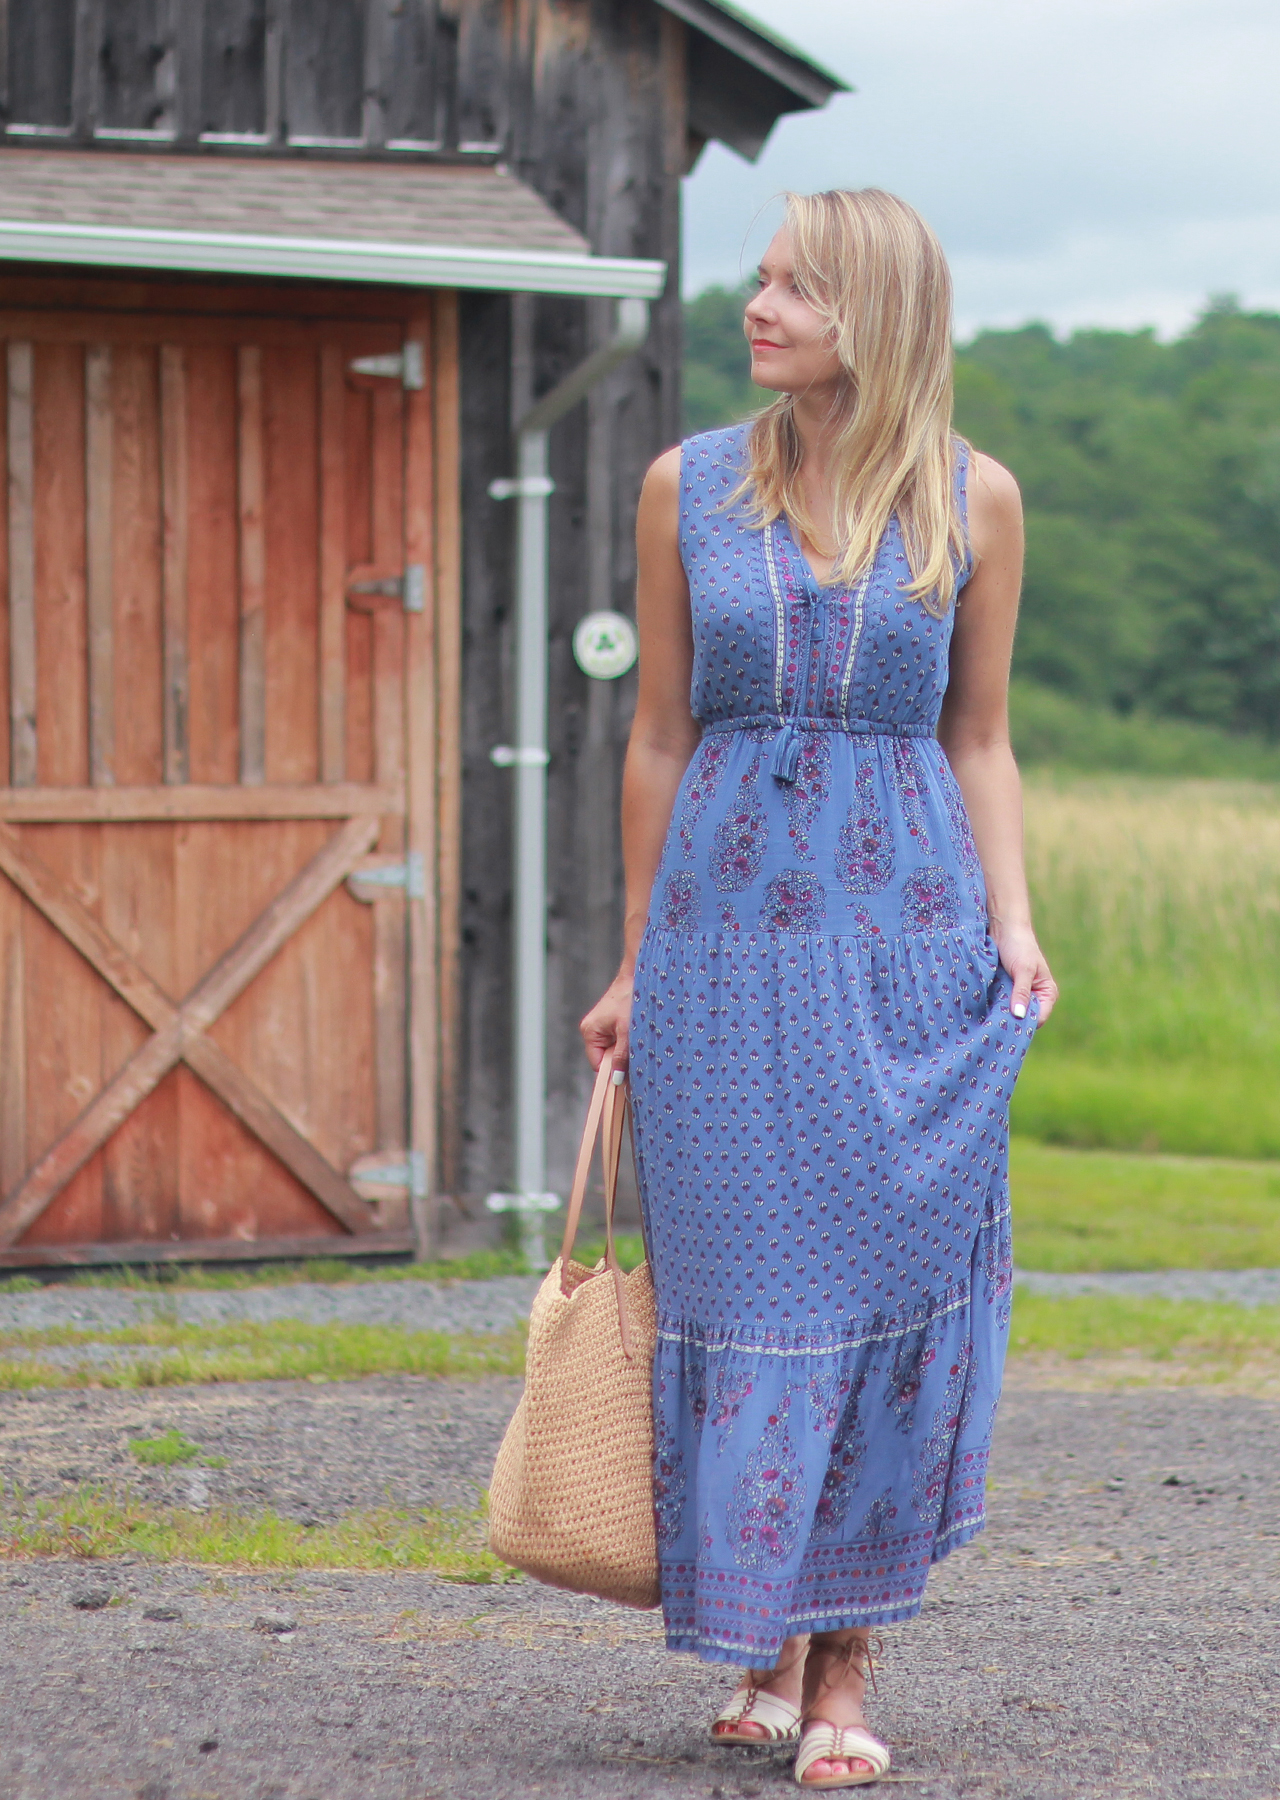 31644b4a7450c The Steele Maiden: Summer in the Country - Old Navy Floral Maxi Dress and  Lace